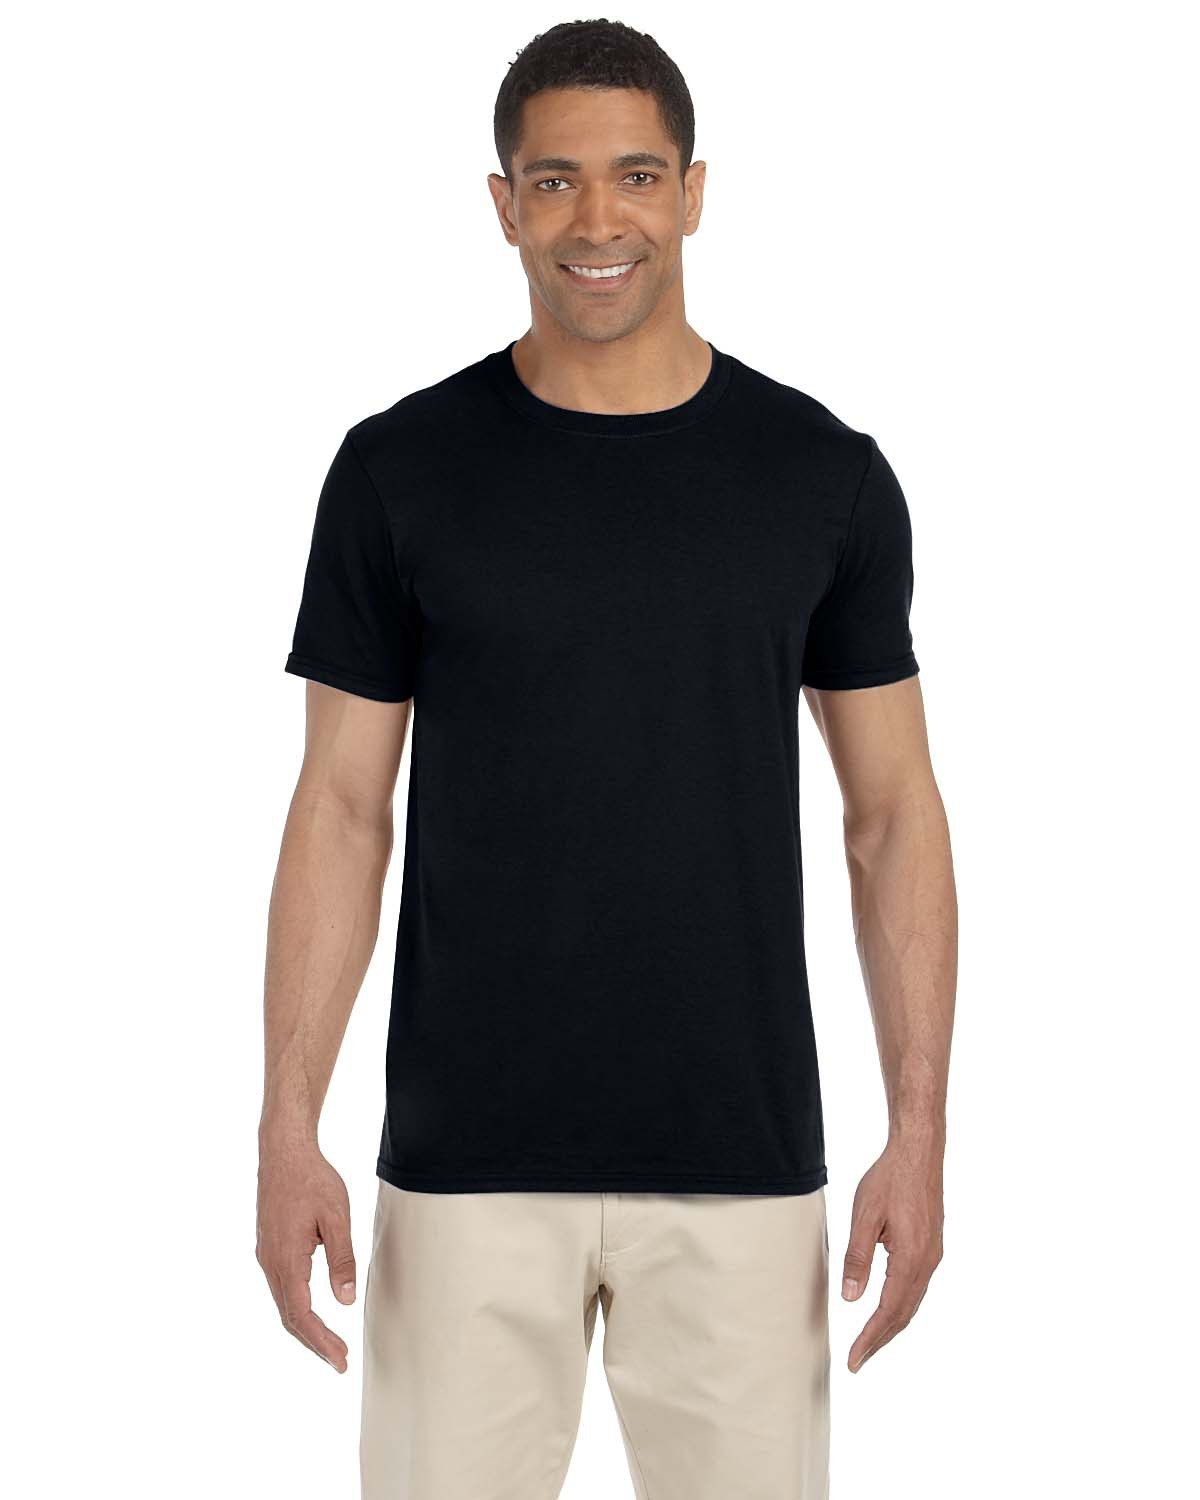 Gildan - G640 - Adult Softstyle®  4.5 oz. T-Shirt